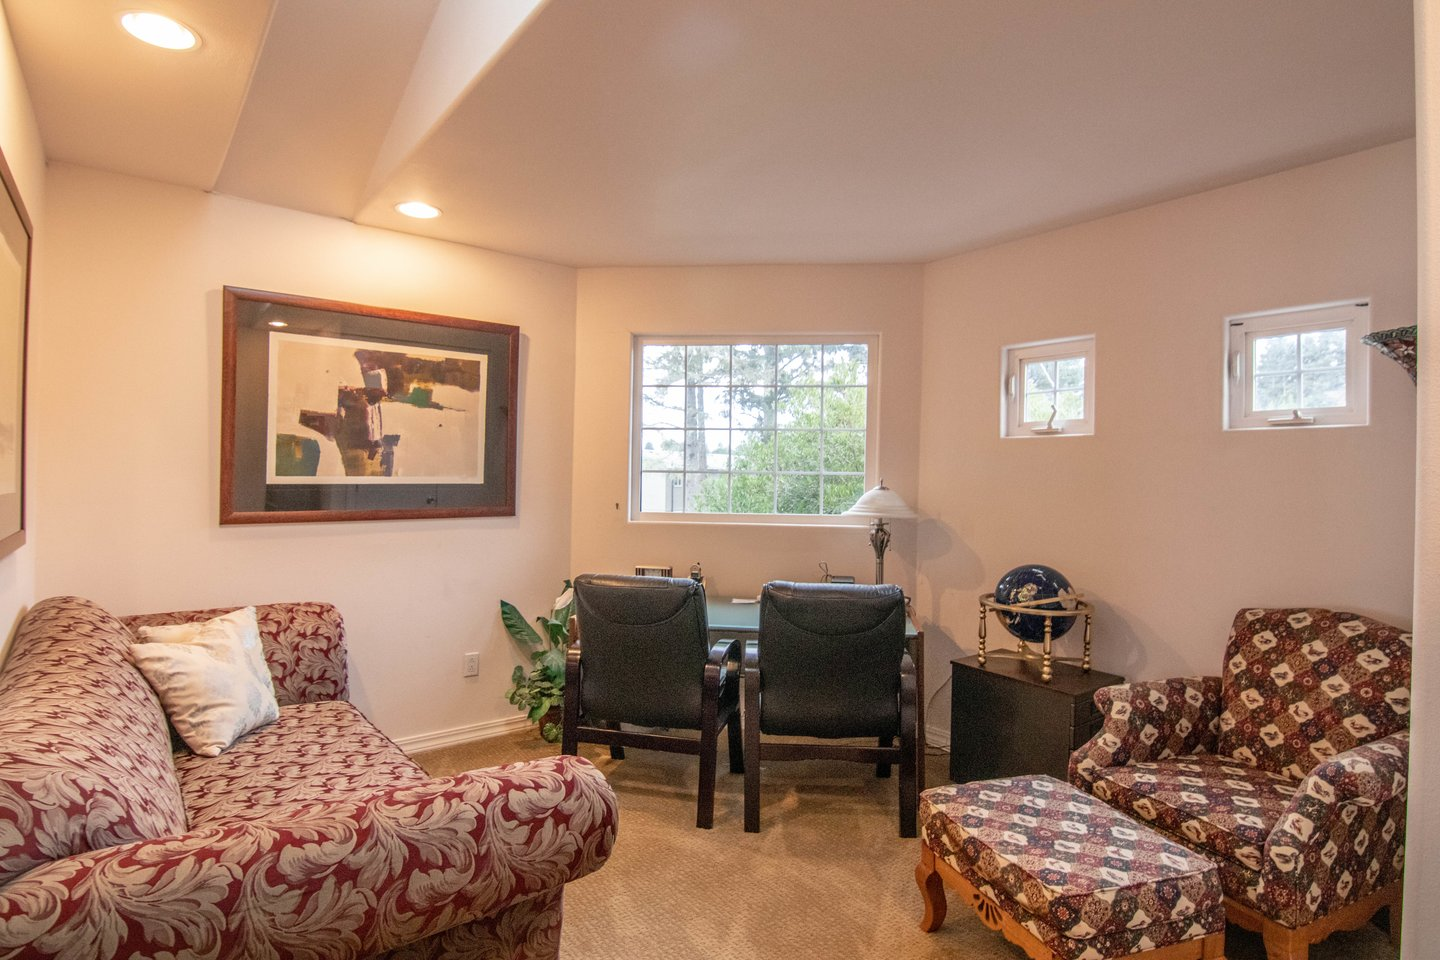 Attached to the master bedroom is a sitting room for work or relaxation.